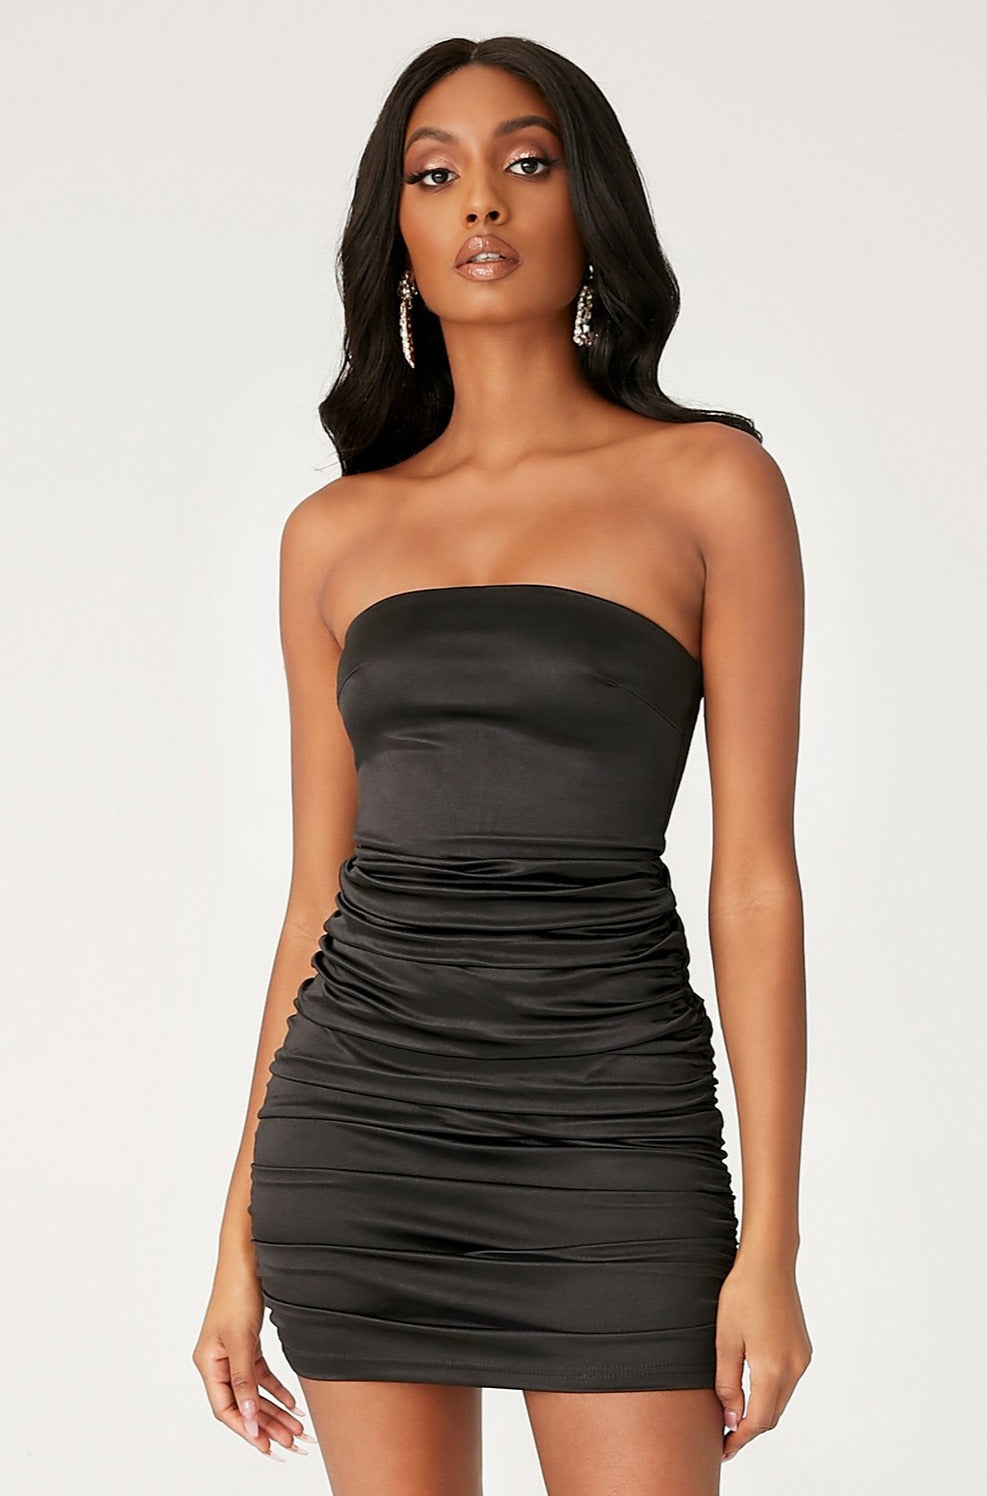 Bernadette Strapless Ruched Side Dress - Black - MESHKI